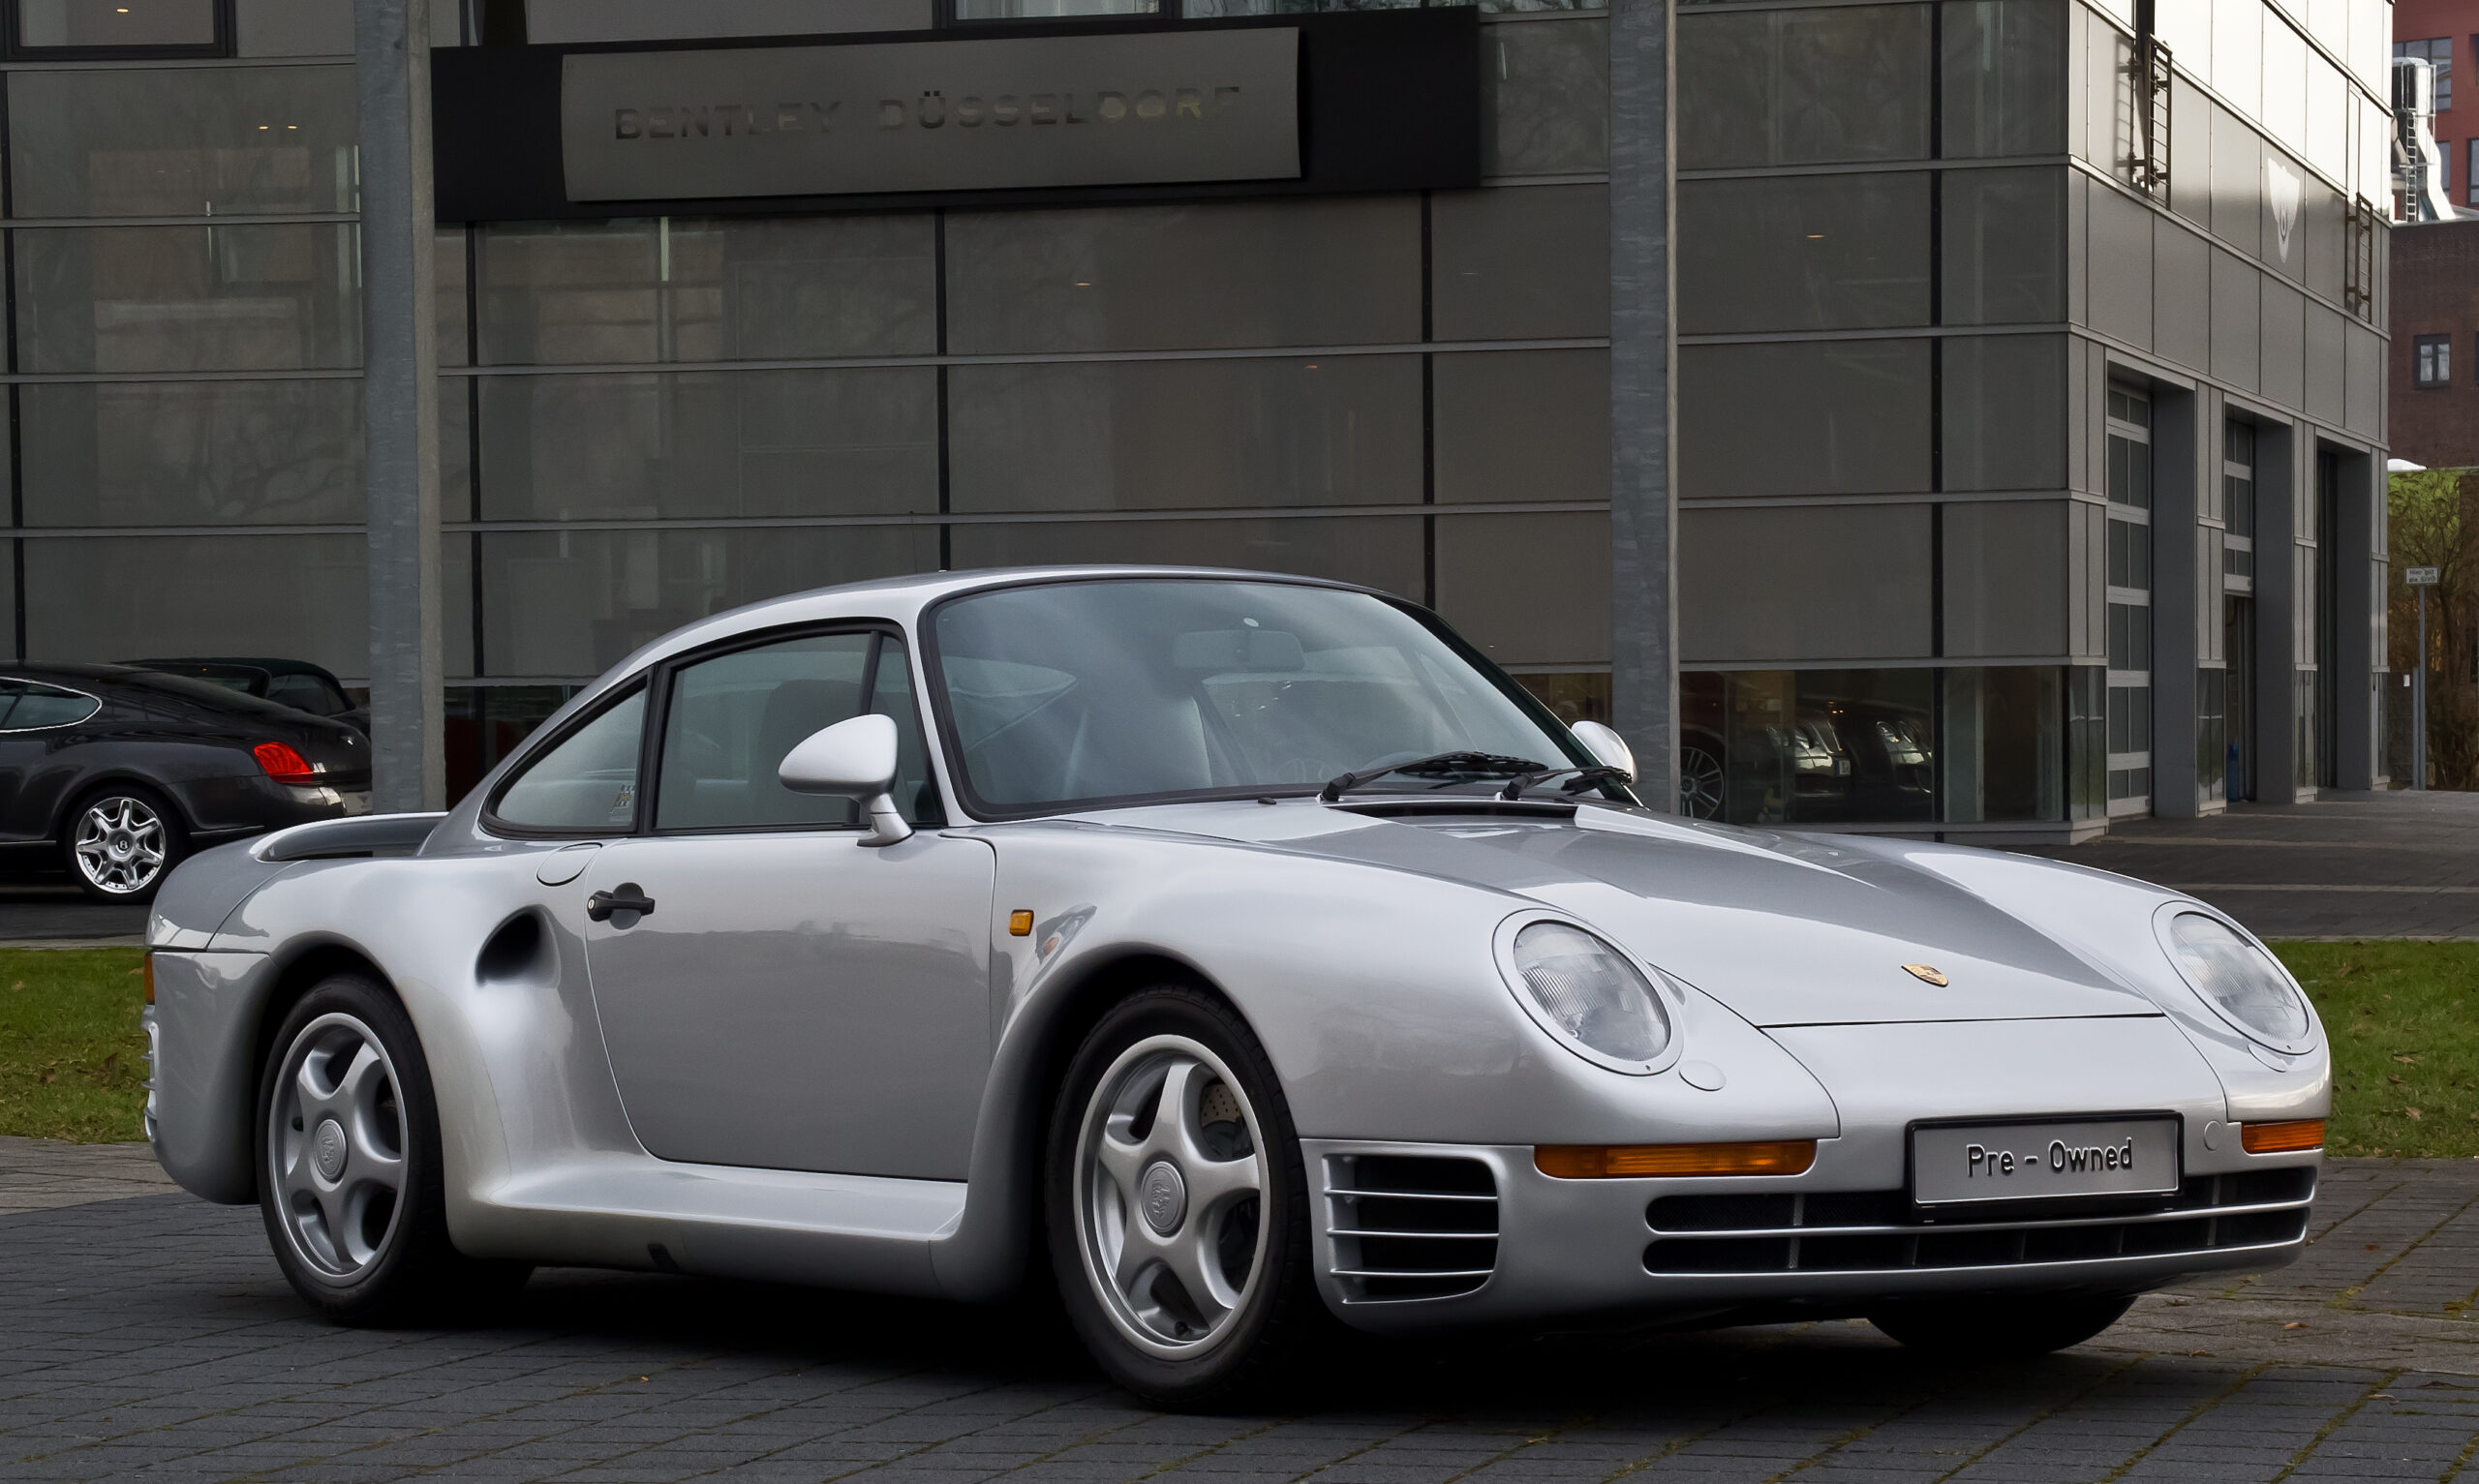 Porsche 959 used model from wikimedia commons